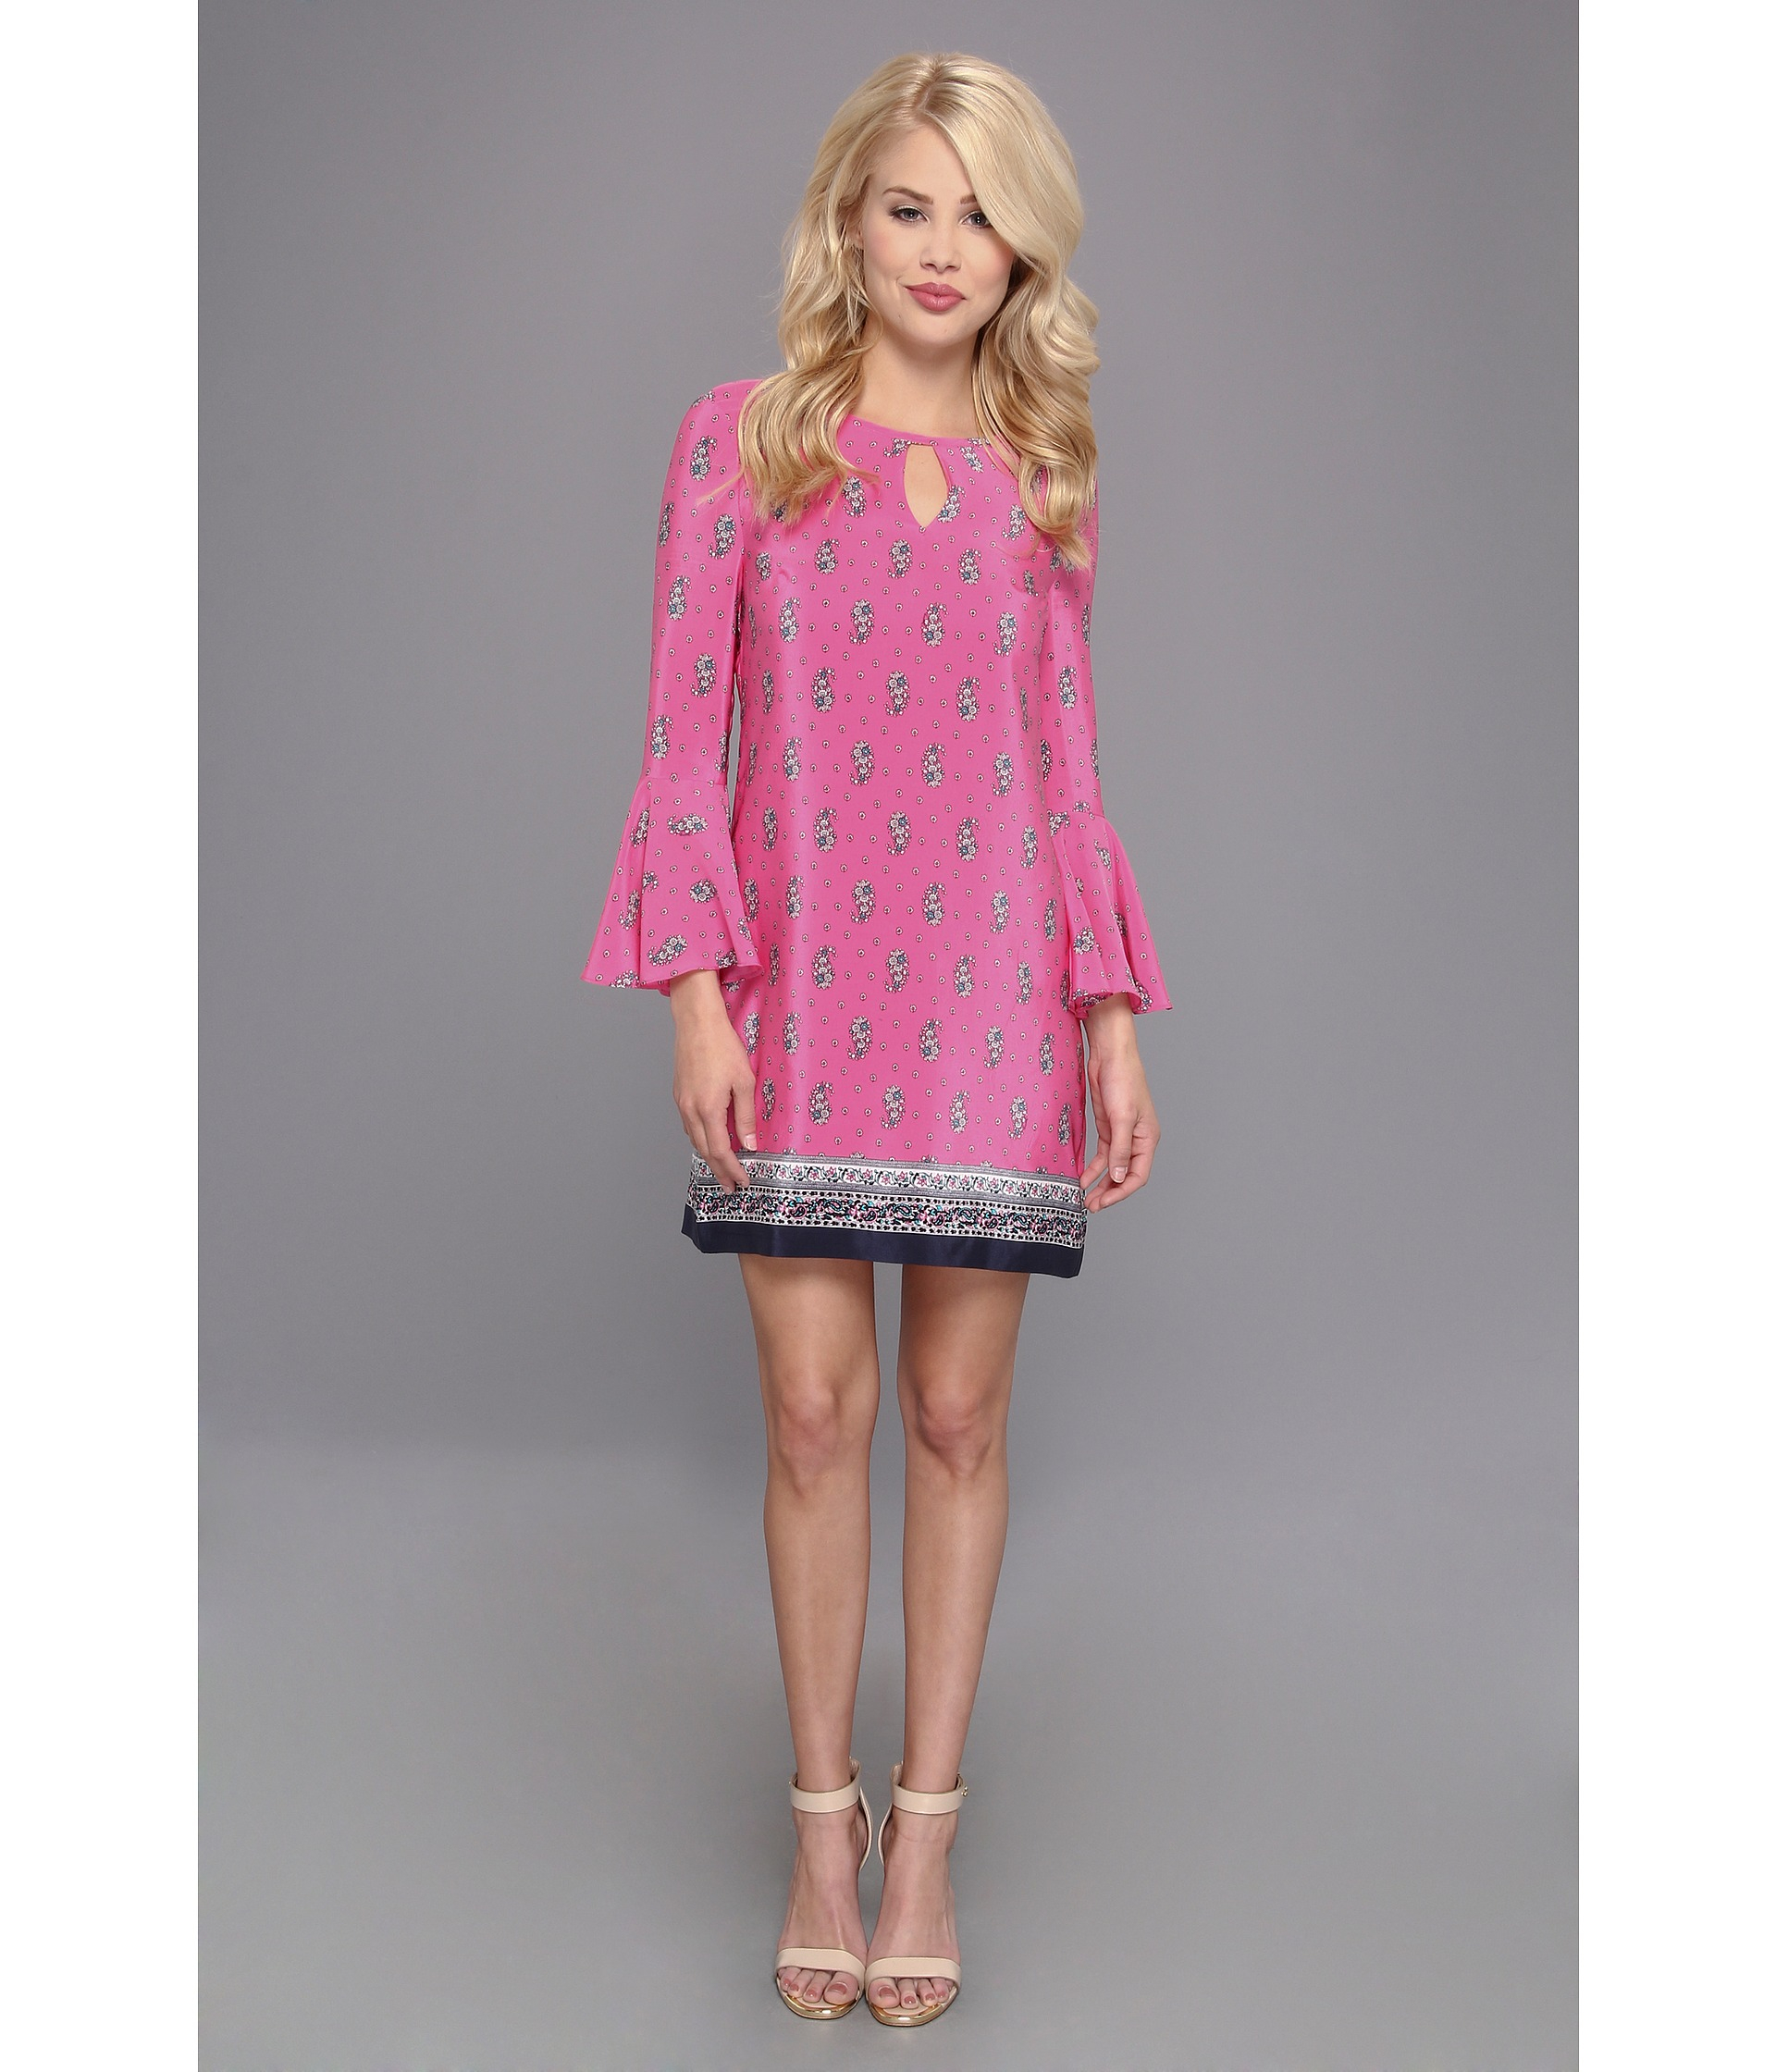 0ecc624e9d Lyst - Juicy Couture Boho Paisley Dress in Pink